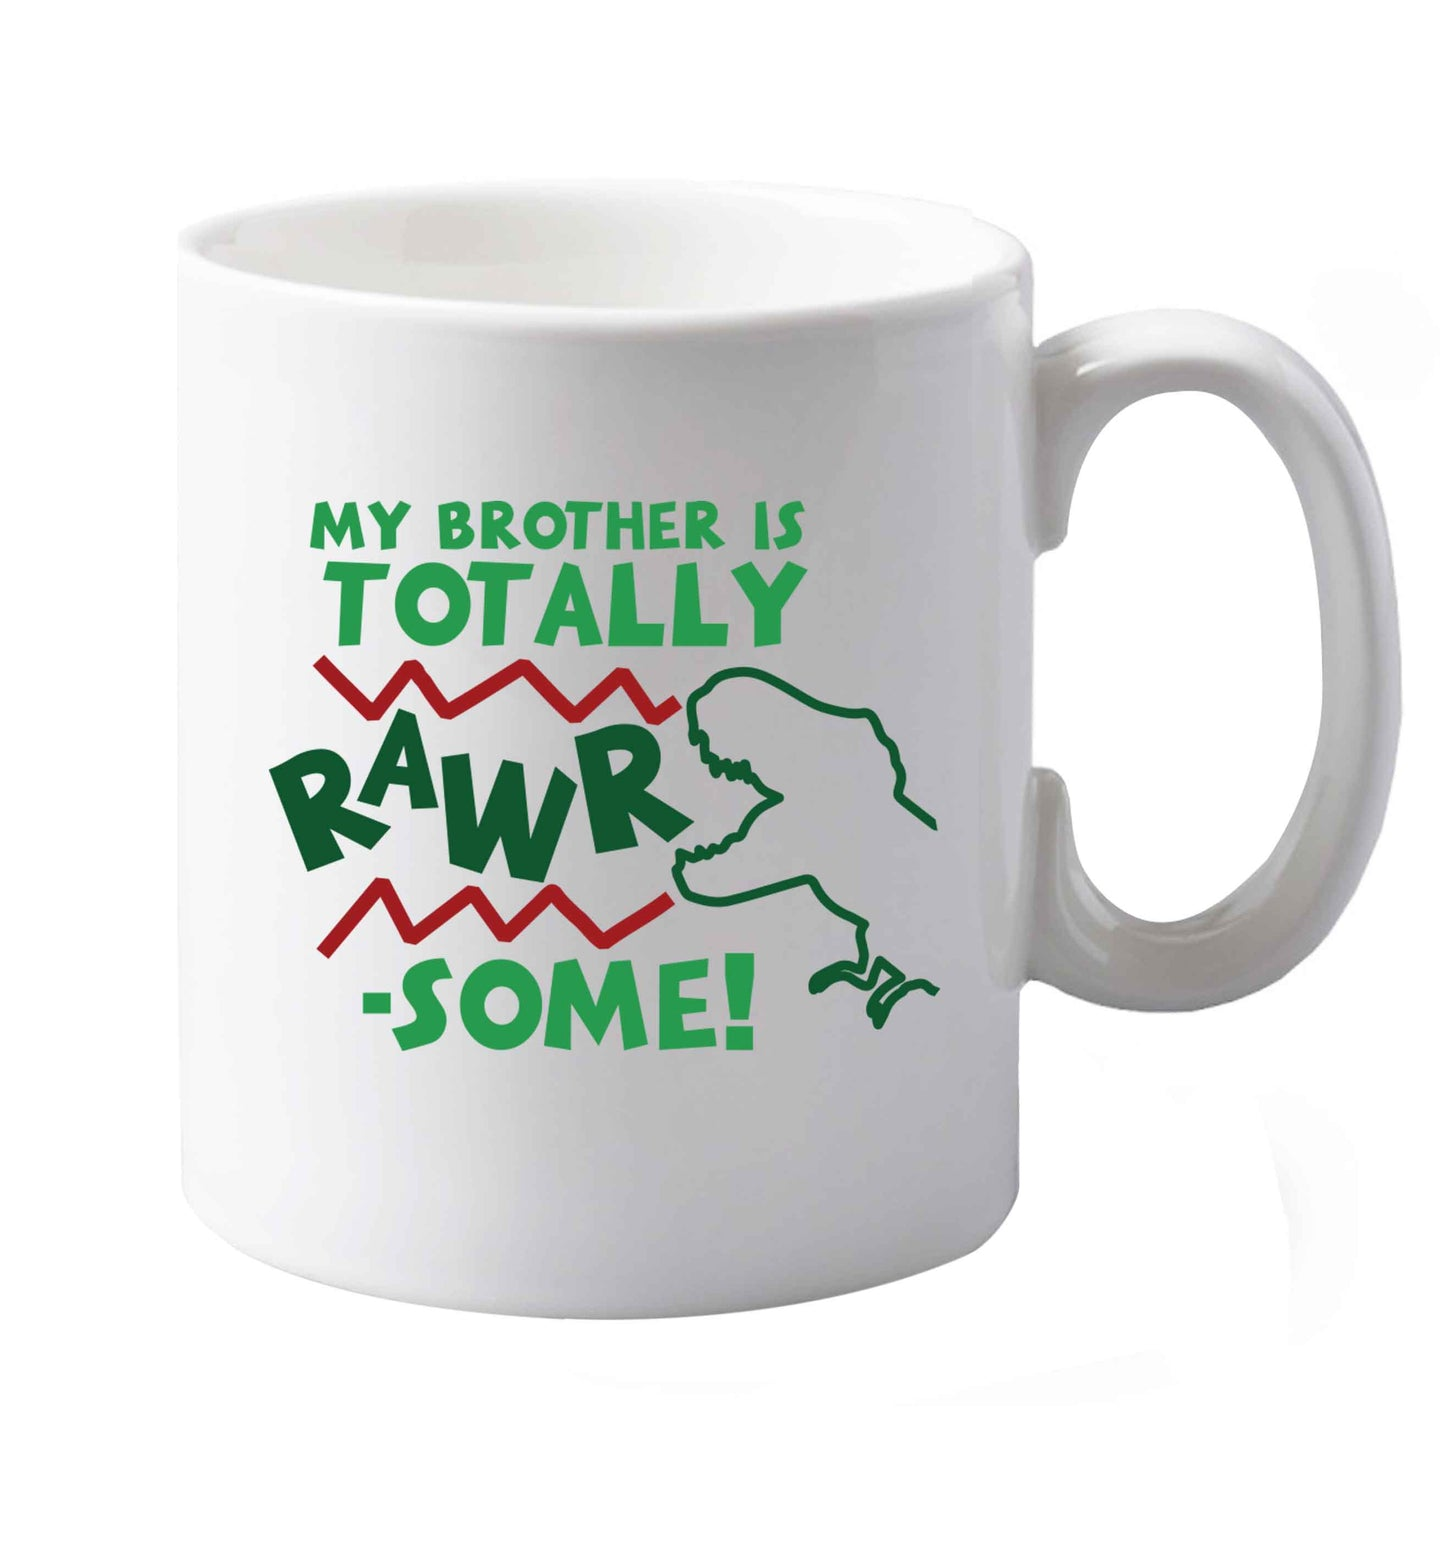 10 oz My brother is totally rawrsome ceramic mug both sides